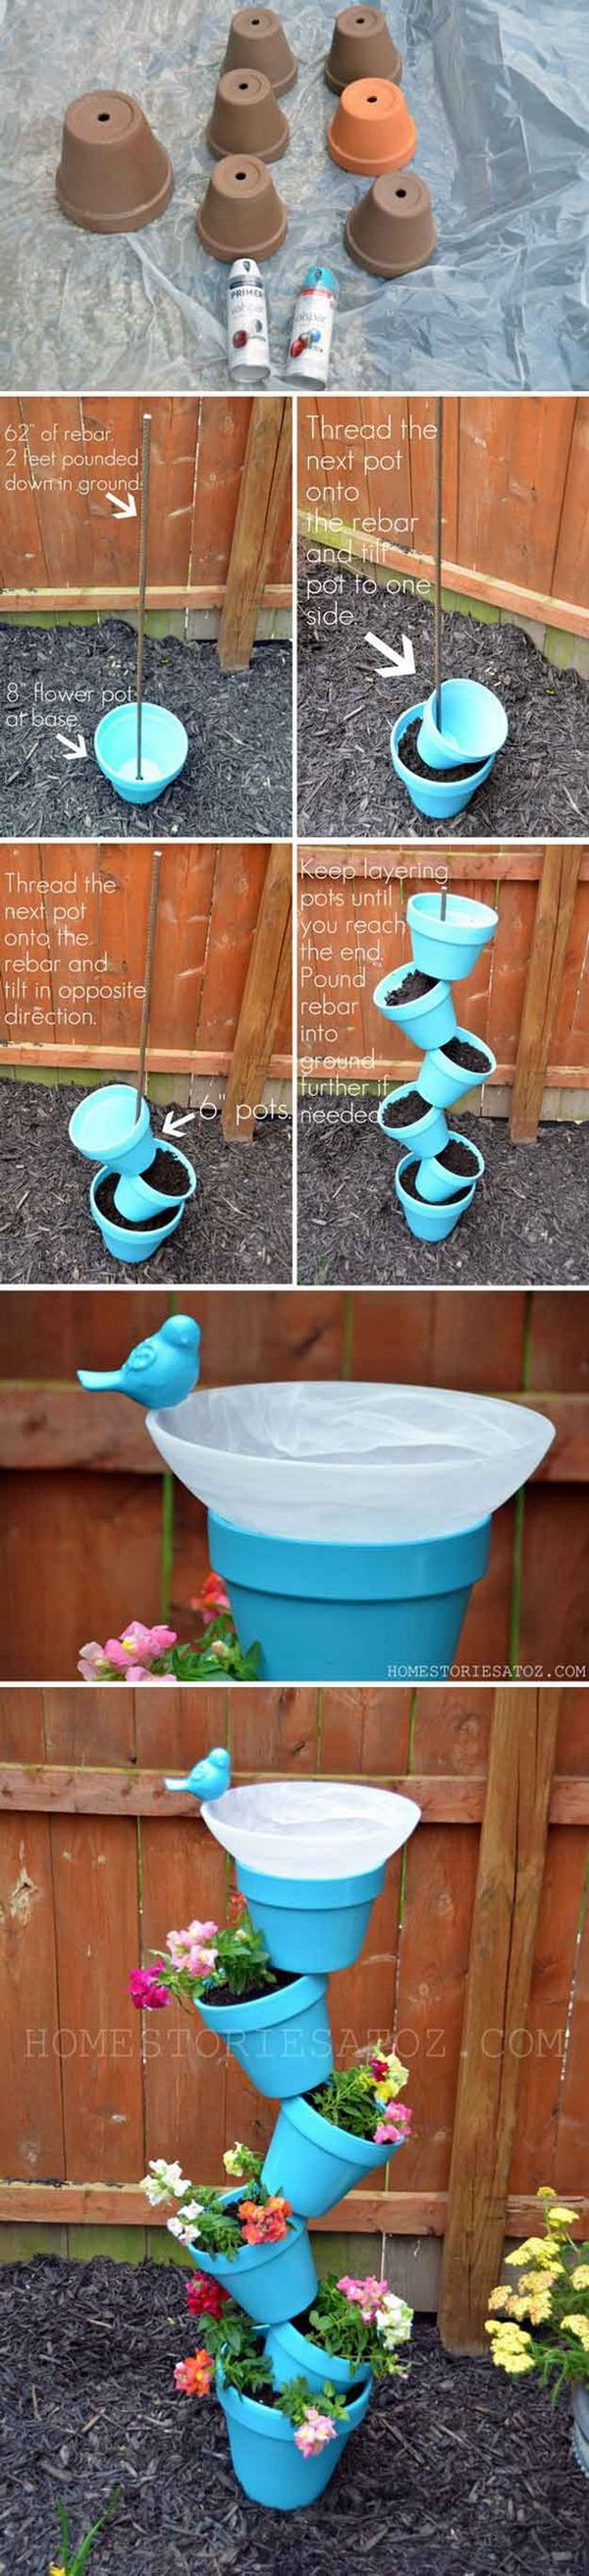 DIY Tower Garden Planter and Bird Bath. A great DIY garden project that was for the birds! It will be the perfect addition to a garden.